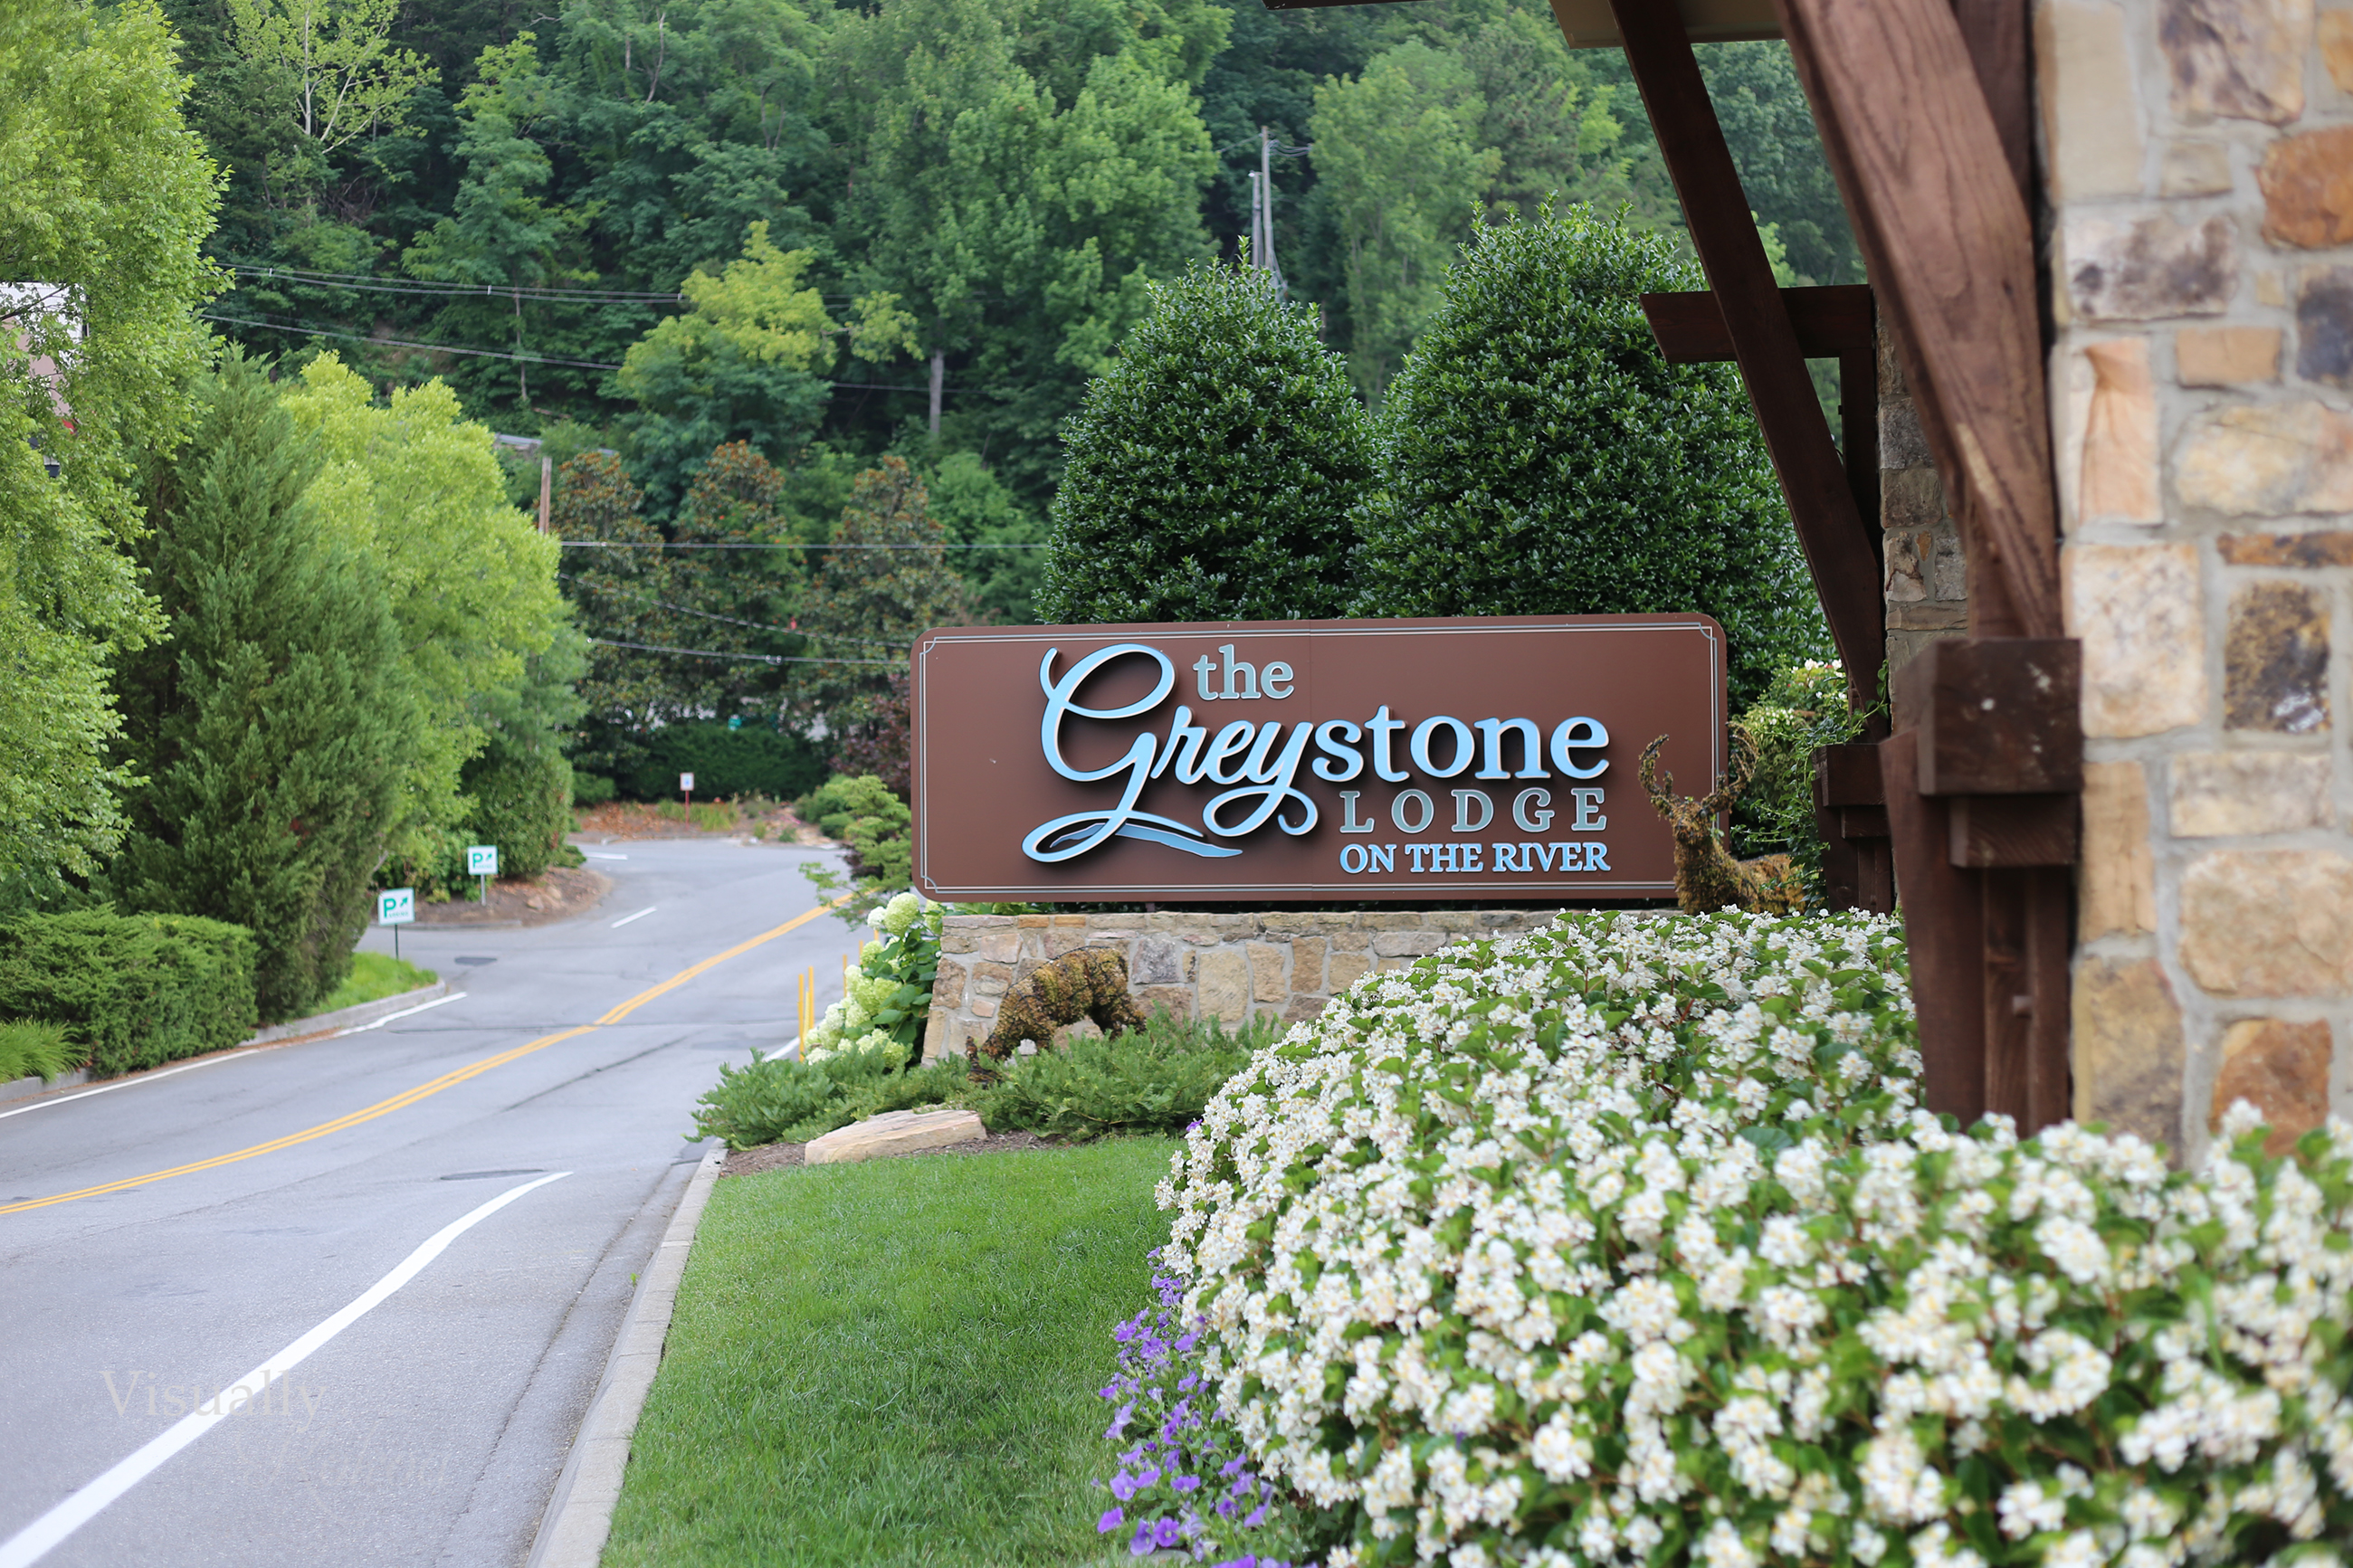 greystone lodge on the river